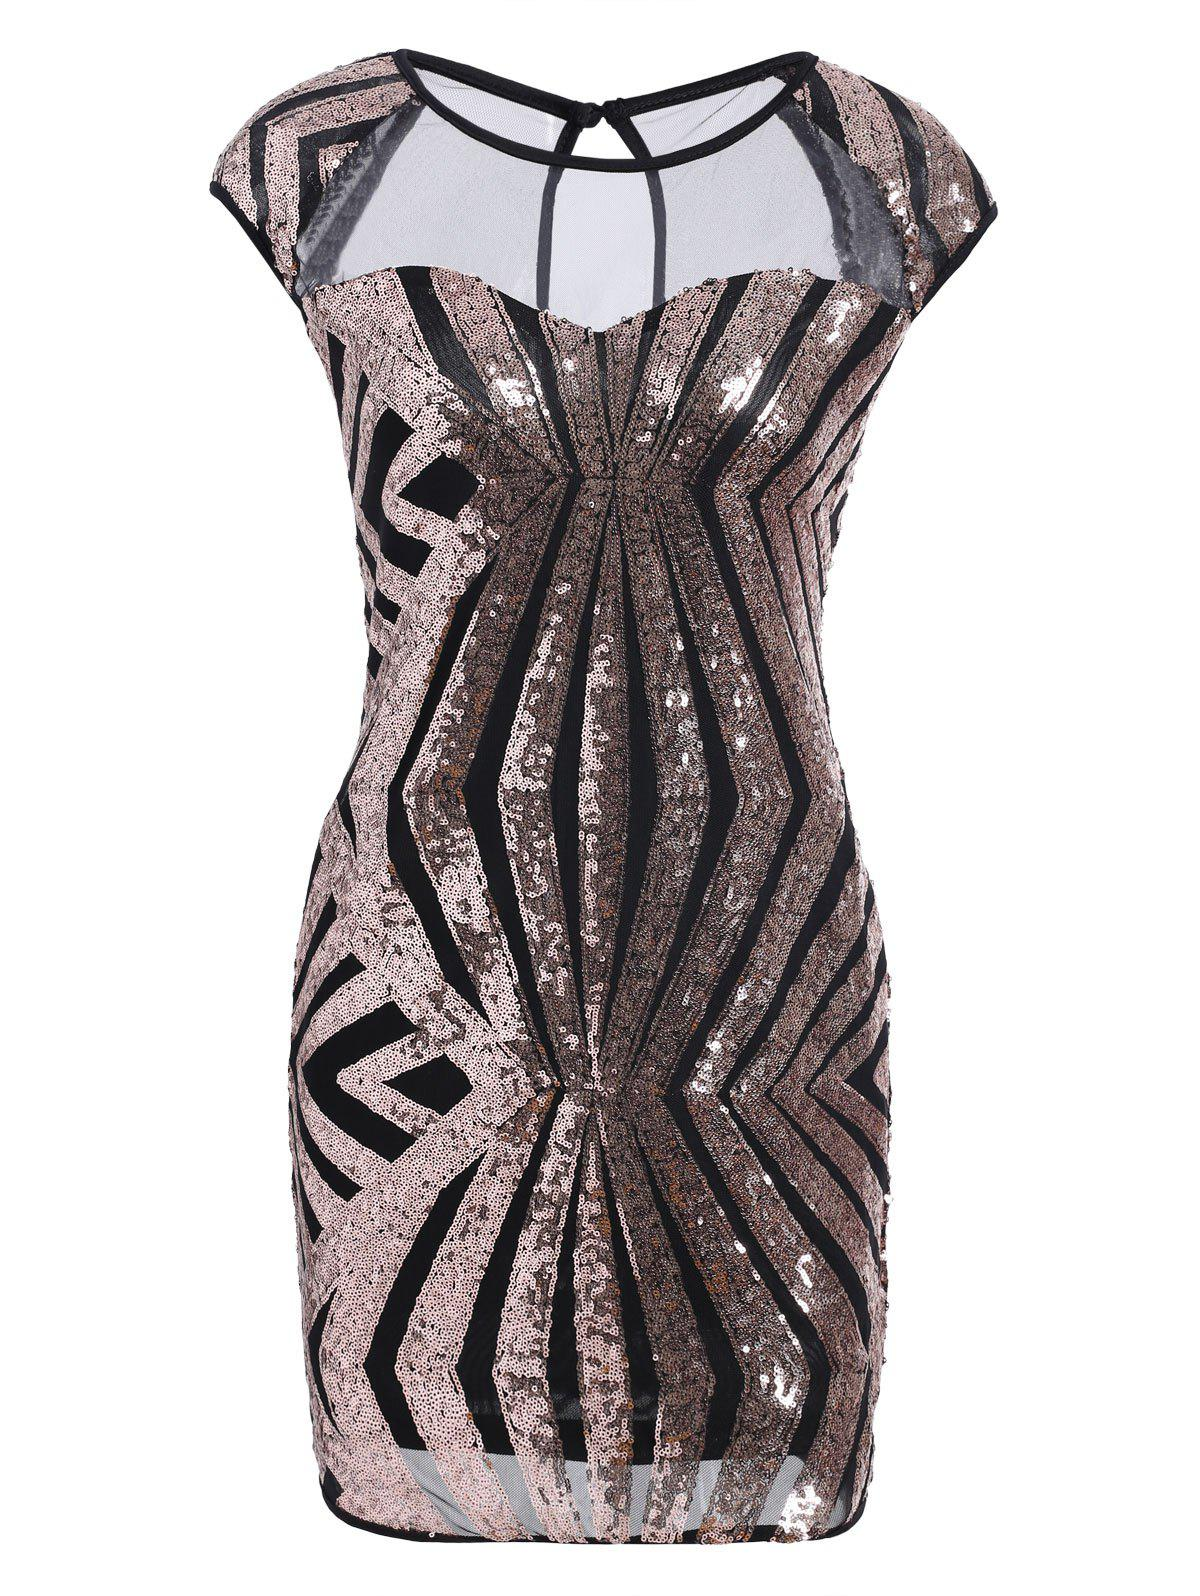 Mesh Insert Sequin Bodycon Club Dress - GOLDEN XL